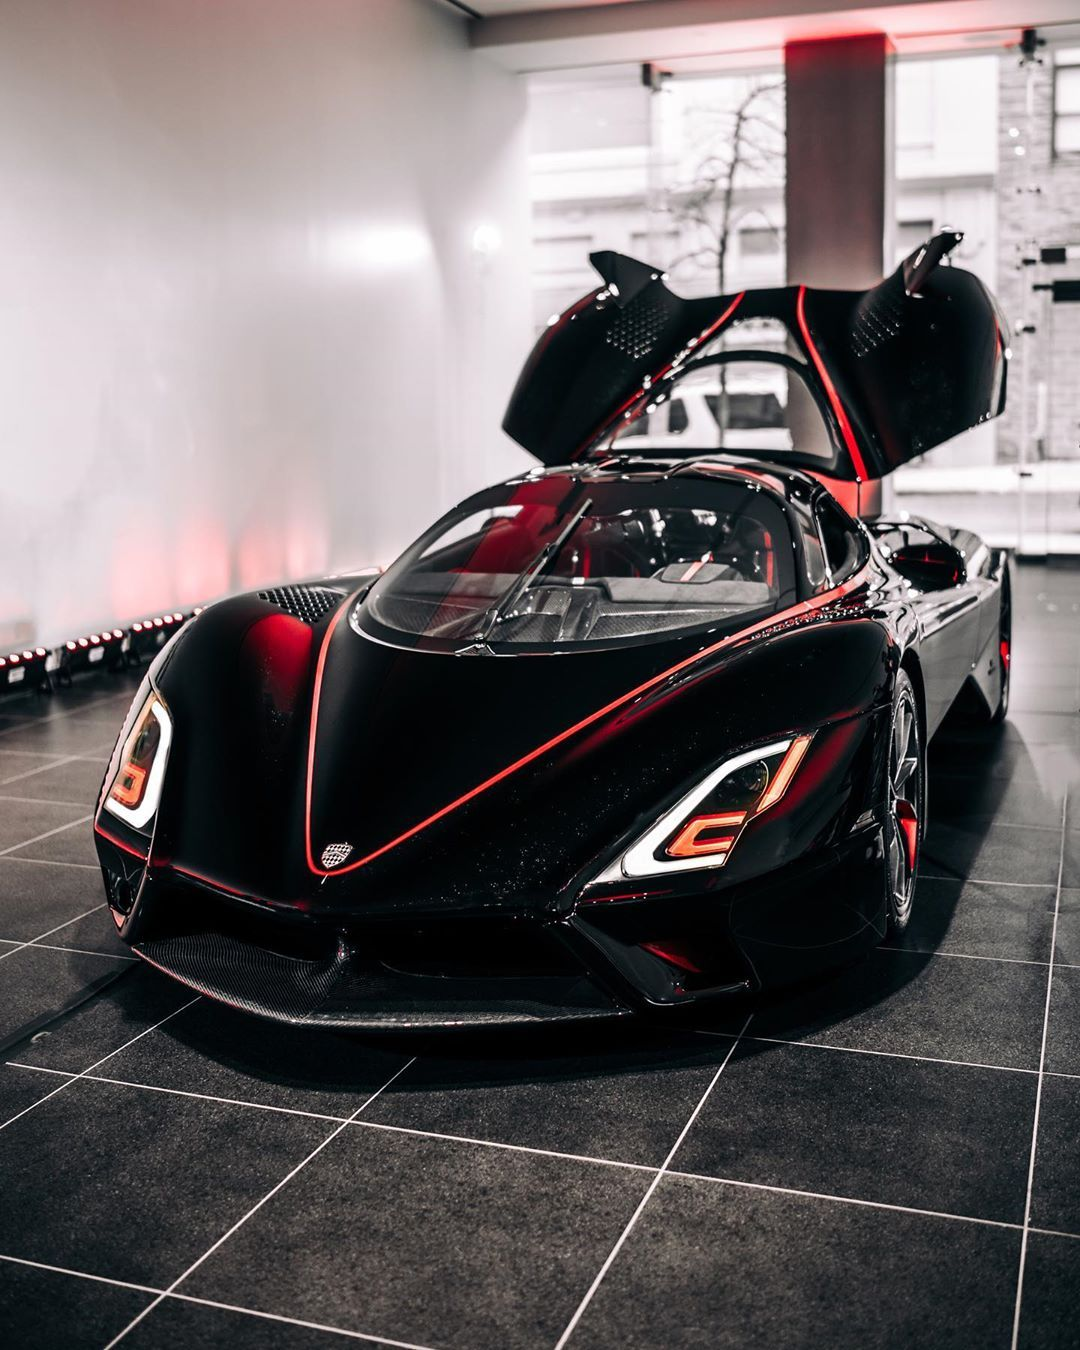 Got A Chance To Check Out The 1 9 Million Dollar Ssc Northamerica Hypercar Yesterday At Manhattanmotorcars Inter Super Cars Super Luxury Cars Exclusive Cars